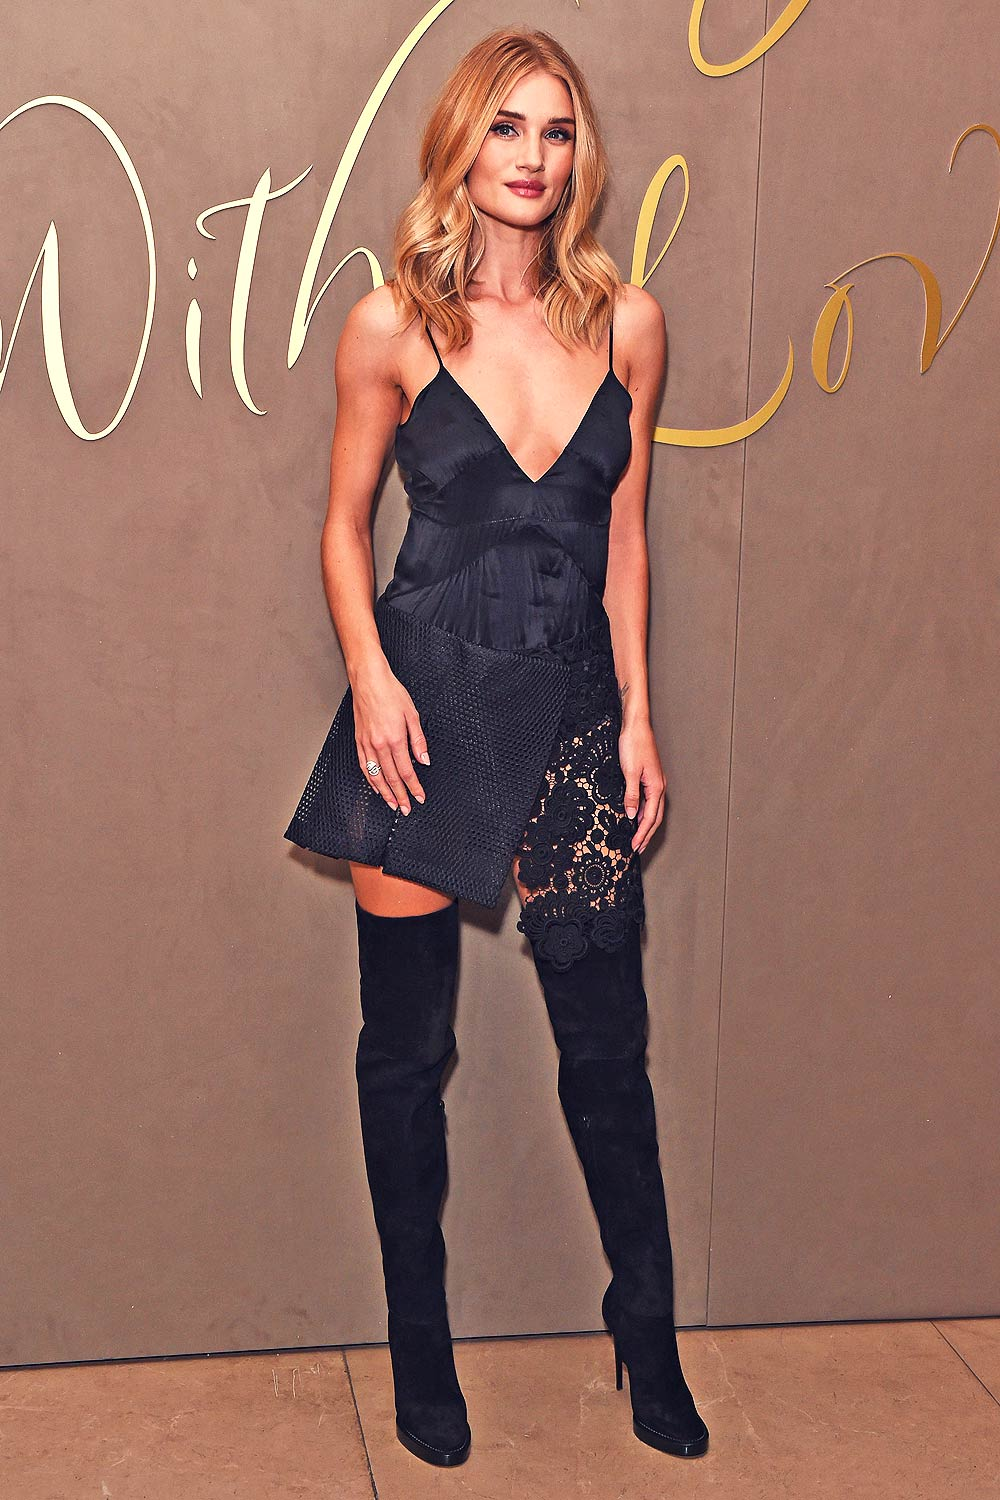 Rosie Huntington Whiteley attends Burberry Festive Film Premiere